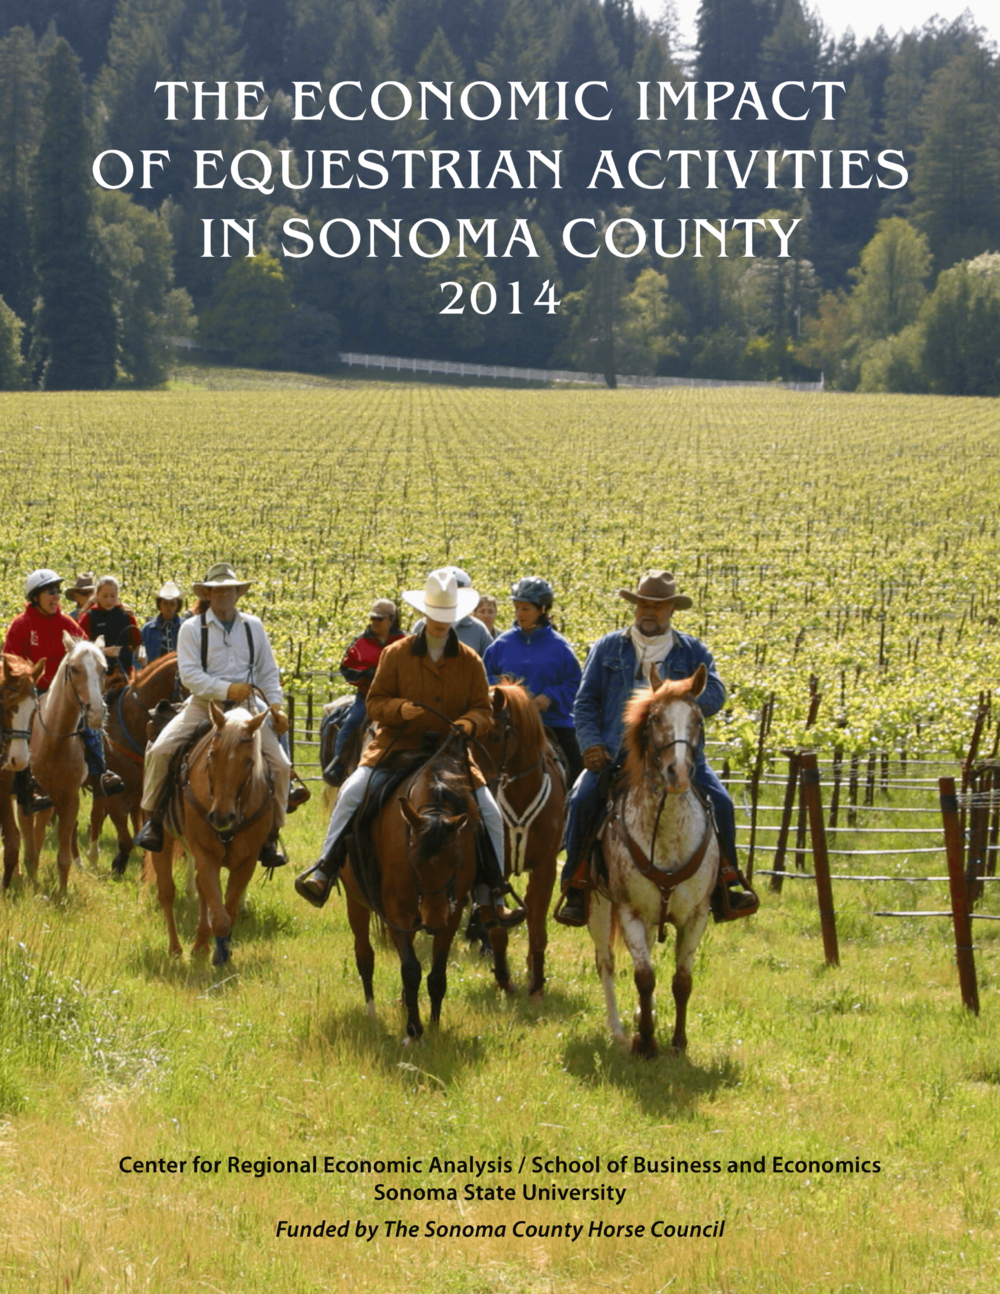 ECONOMIC IMPACT OF EQUESTRIAN ACTIVITIES IN SONOMA COUNTY